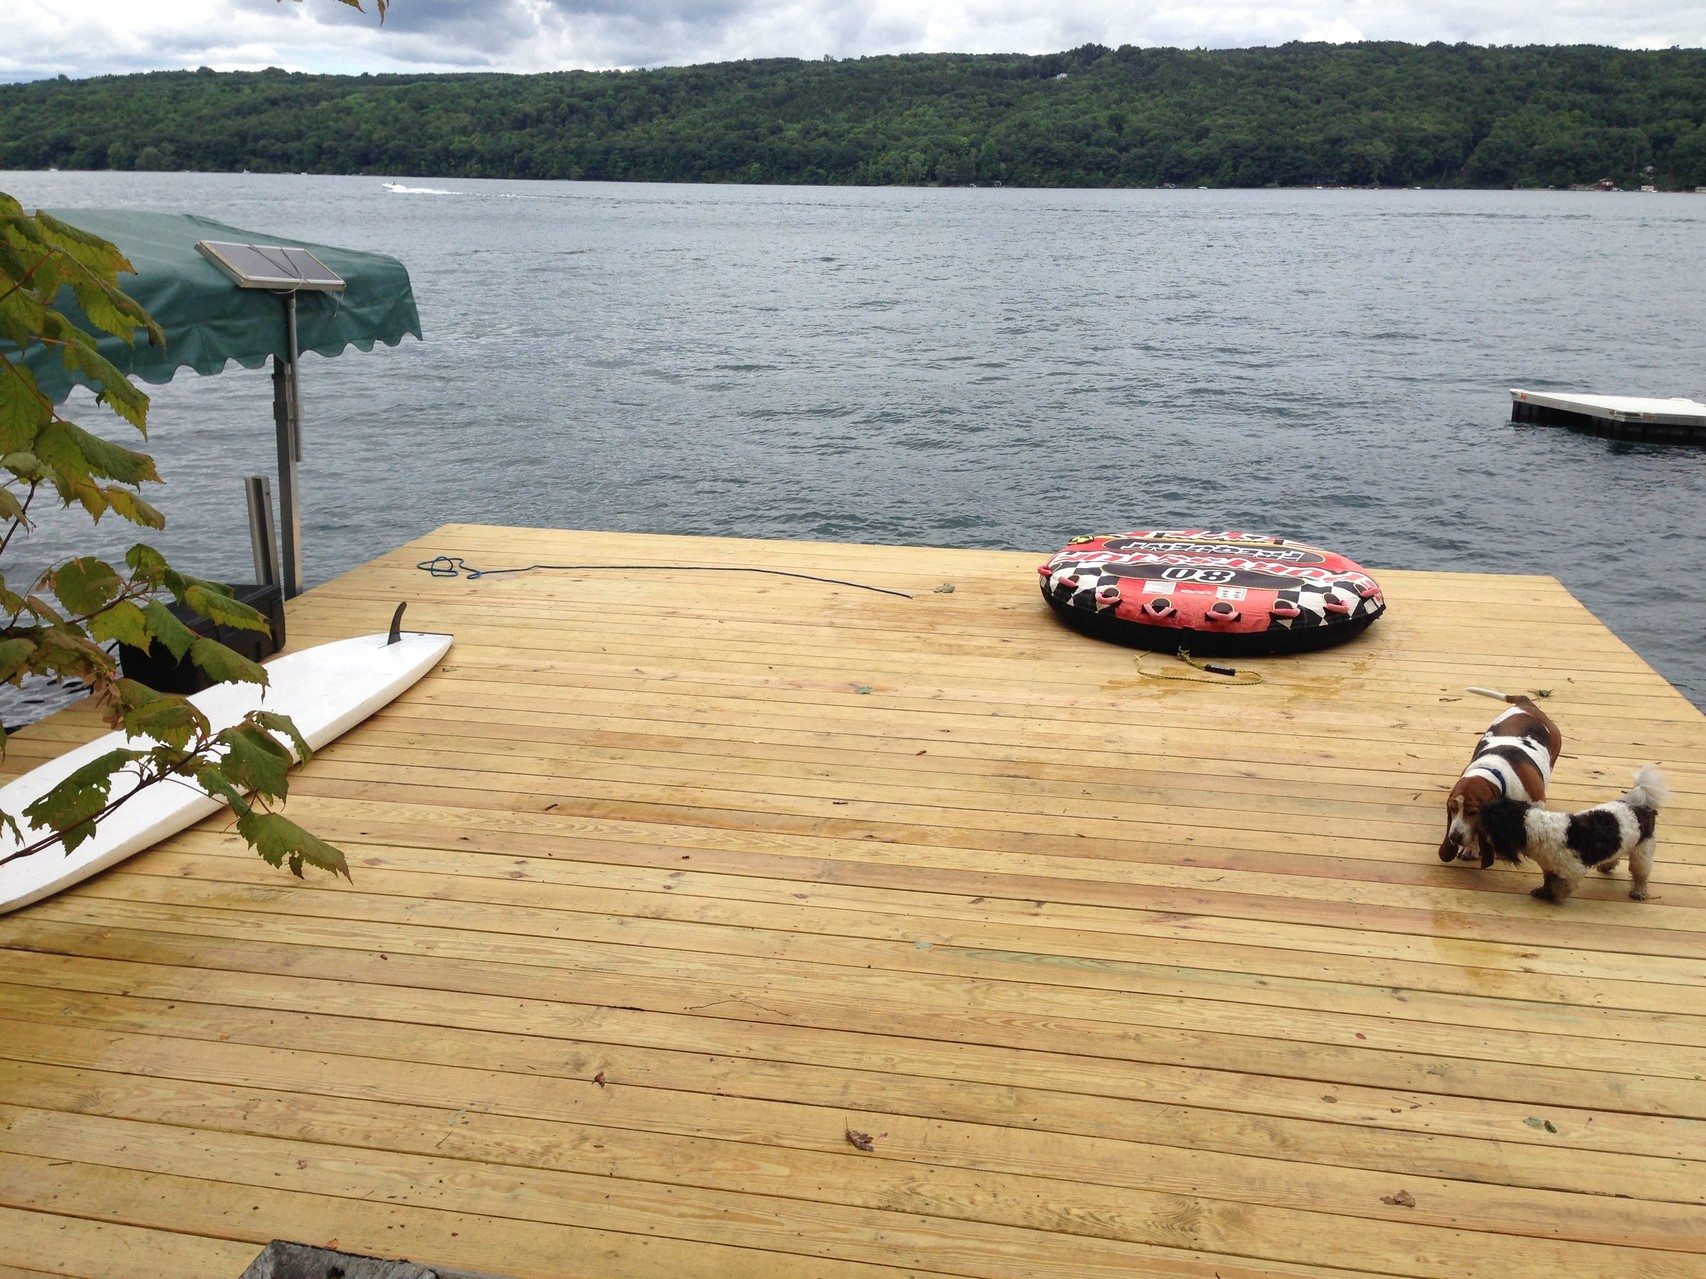 New dock is finished at Skaneateles Lake! 7-14